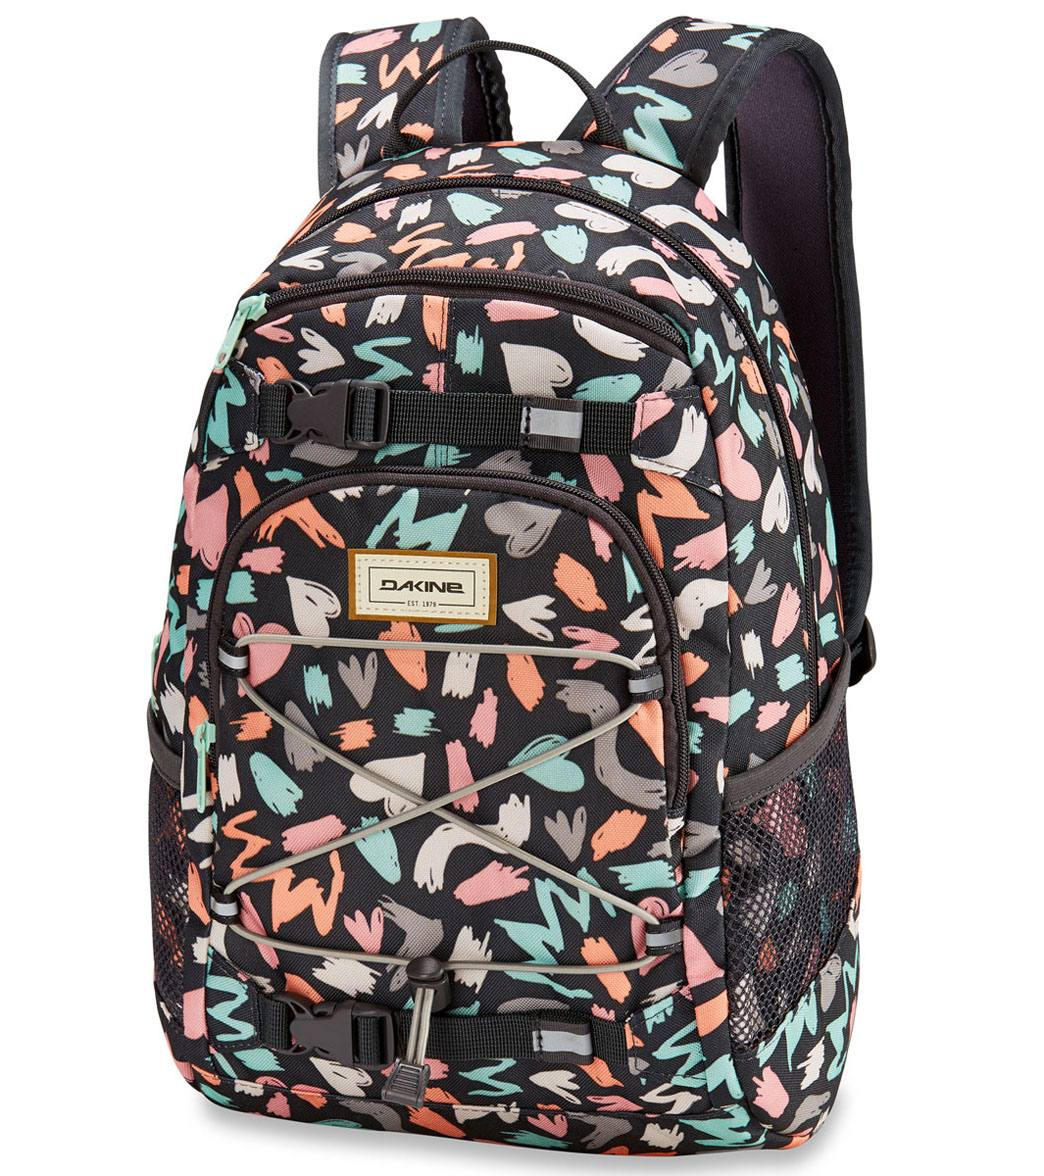 d4d75fee82f13 Dakine Grom 13L Backpack at SwimOutlet.com